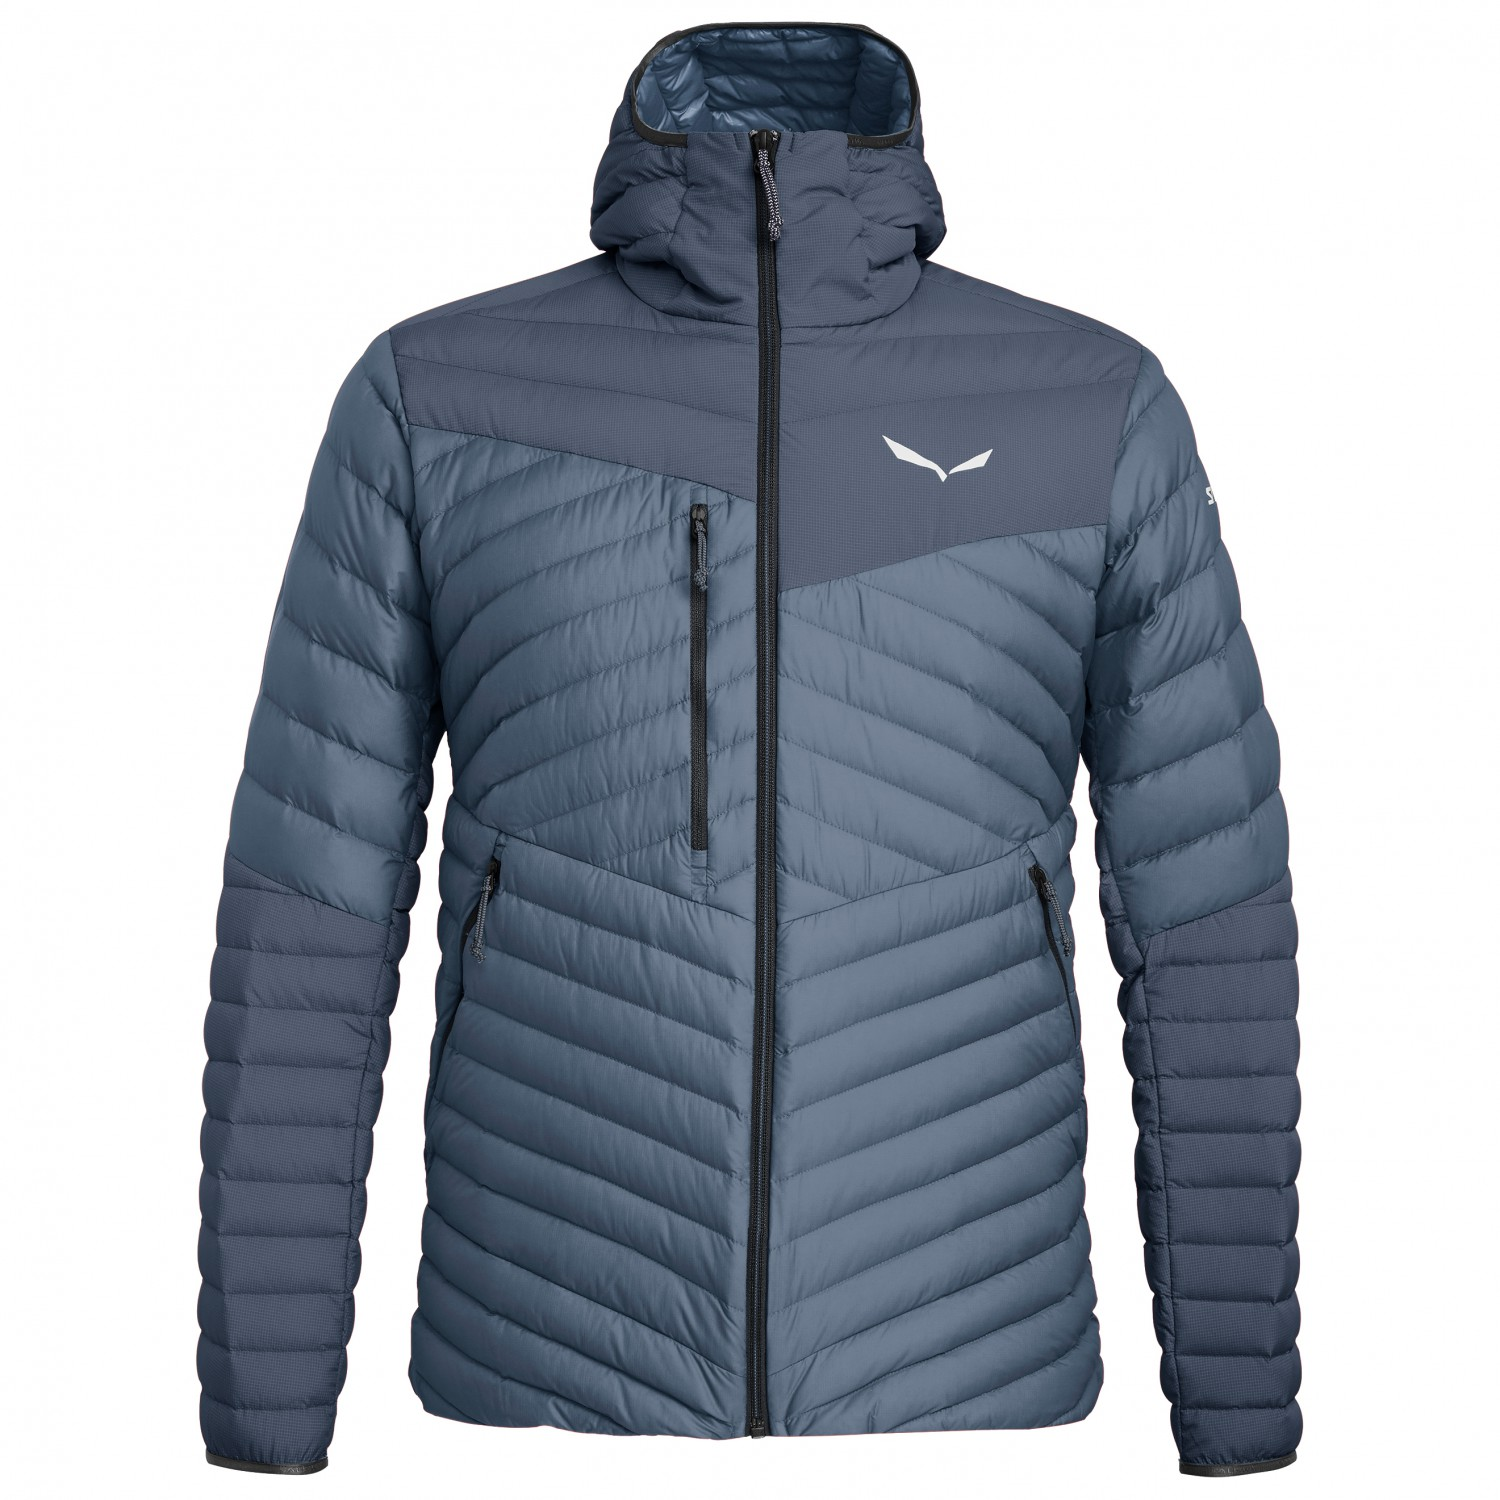 Salewa Ortles Light 2 Down Hood Jacket Down jacket Grisaille Flint Stone Black Out | S